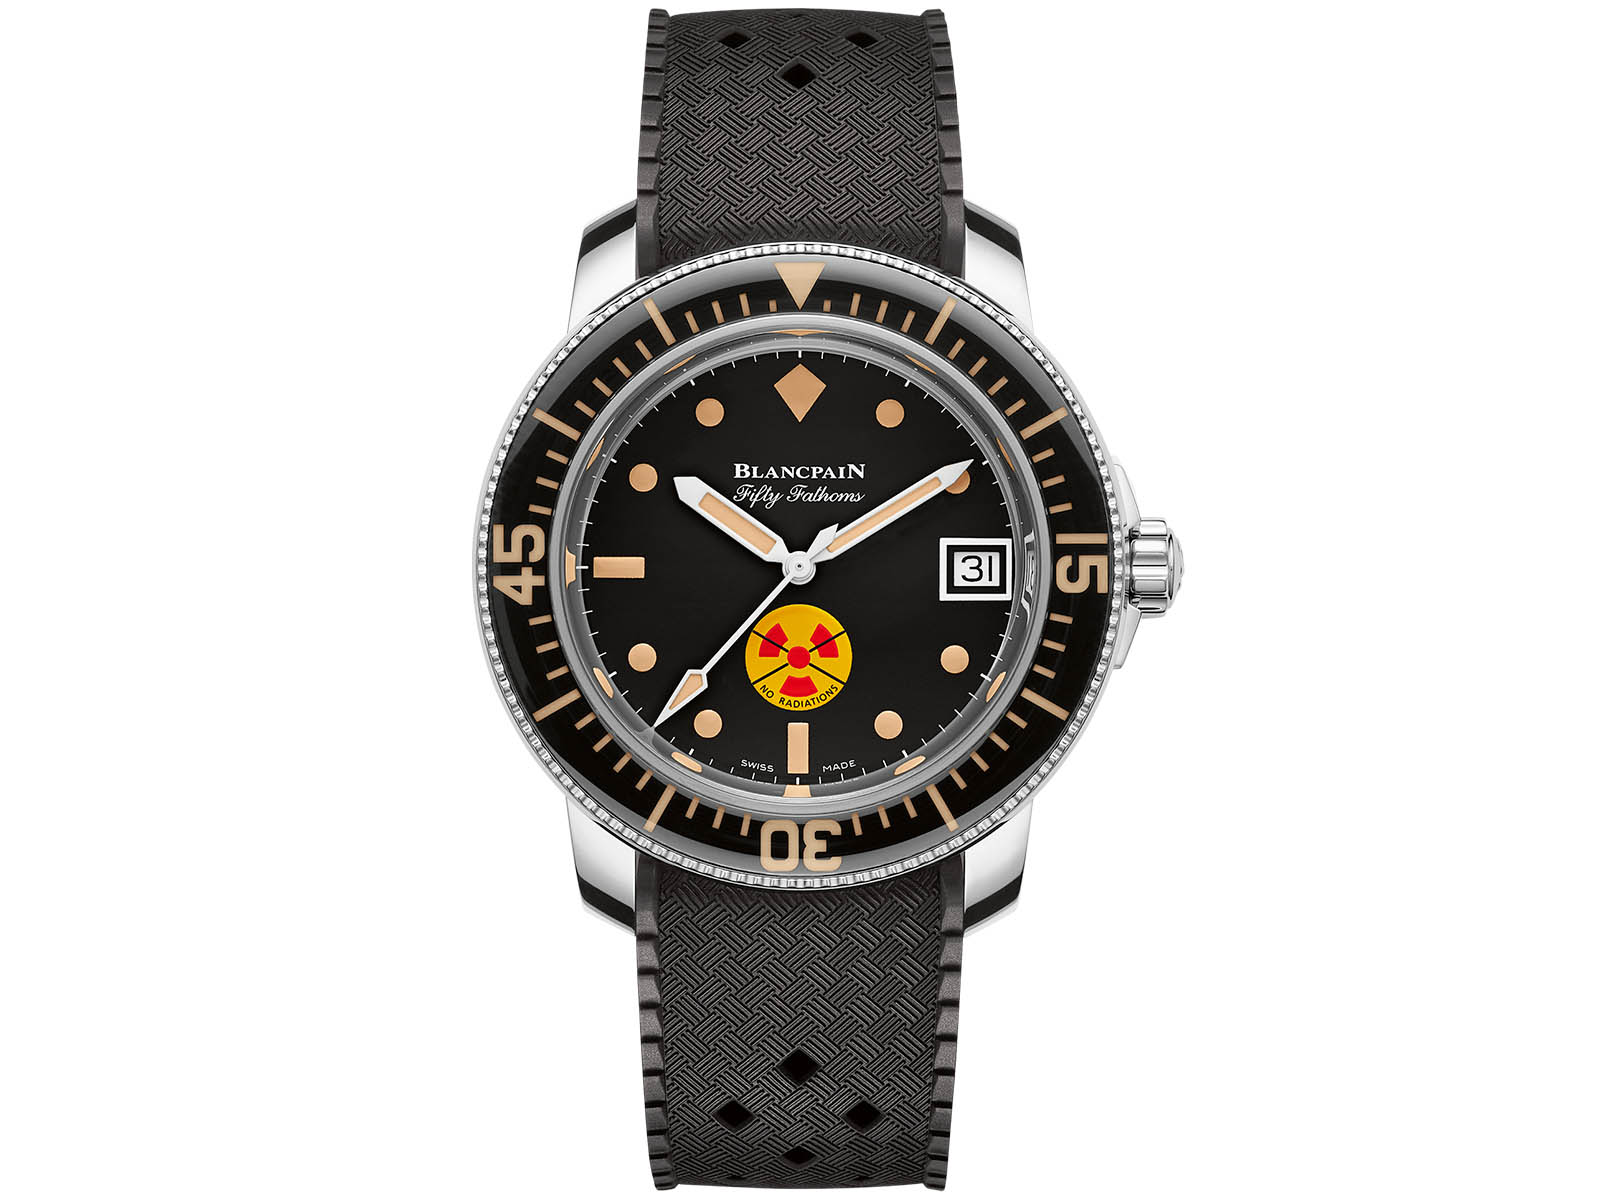 5008d-1130-b64a-blancpain-tribute-to-fifty-fathoms-no-rad-limited-edition-9.jpg